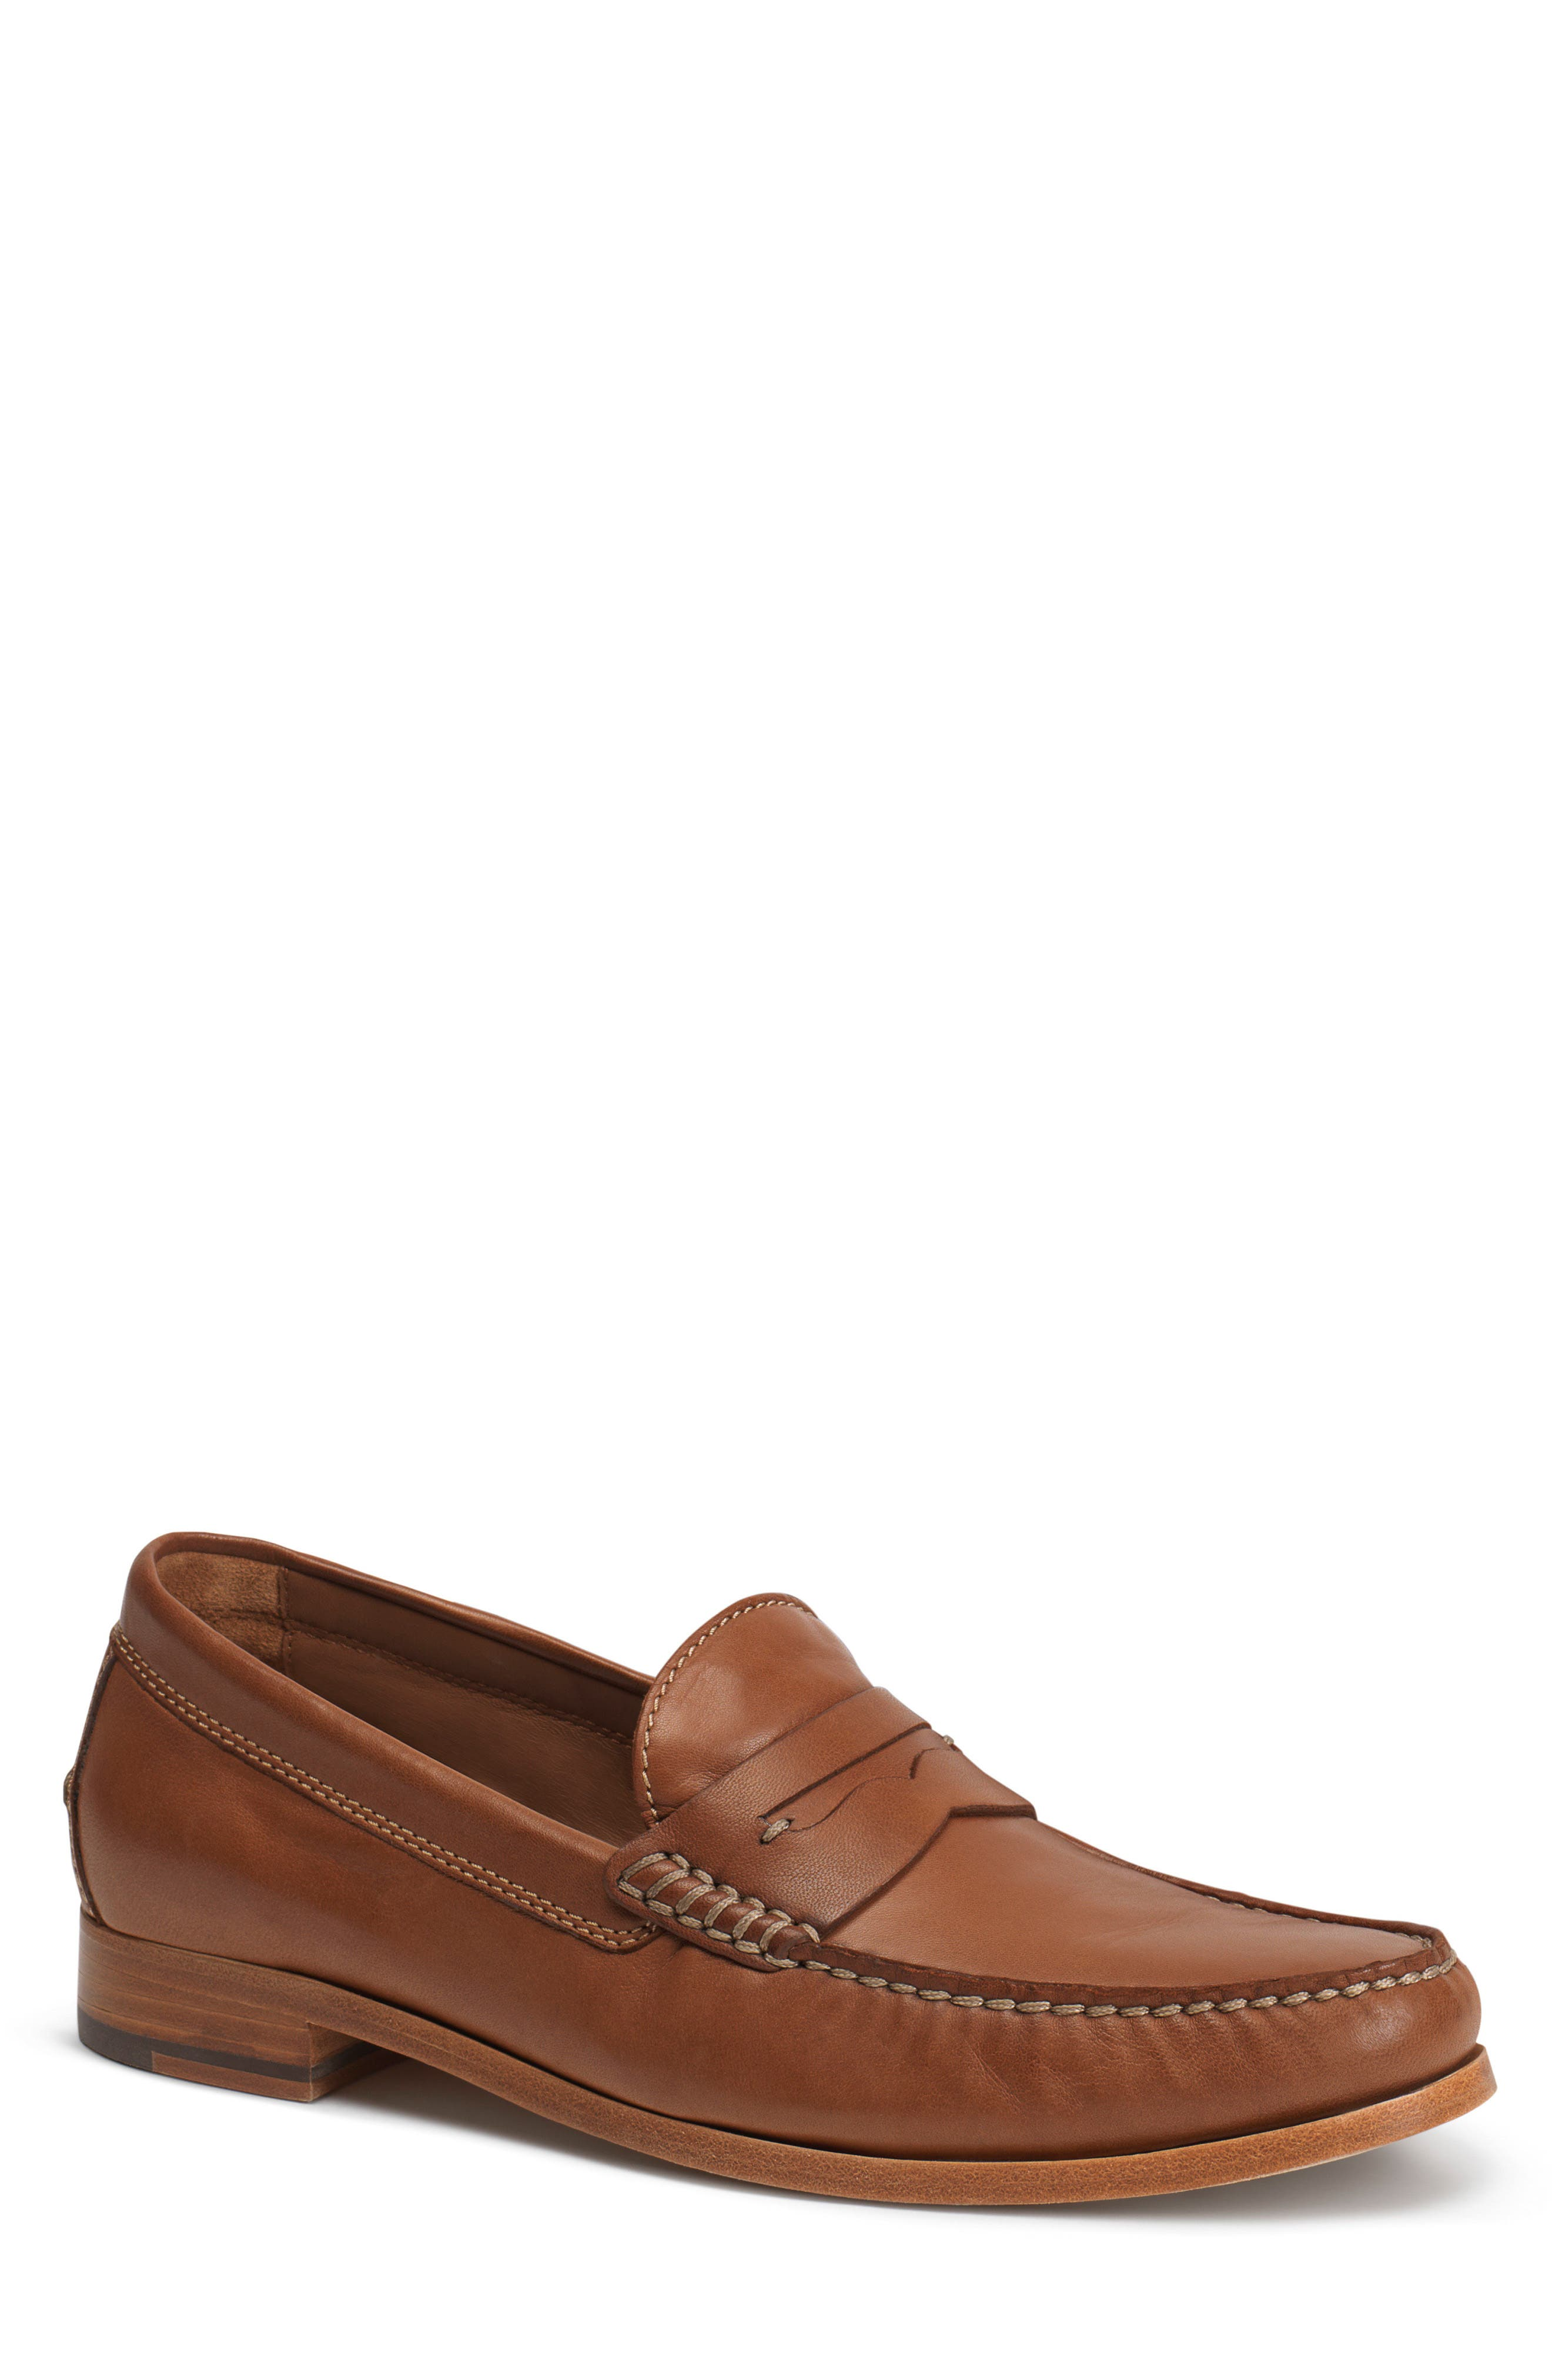 Oiled Horween Chromexcel leather enriches a handsome penny loafer featuring a stacked leather heel and a buffed sole. Style Name: Trask \\\'sadler\\\' Penny Loafer (Men). Style Number: 5234275. Available in stores.